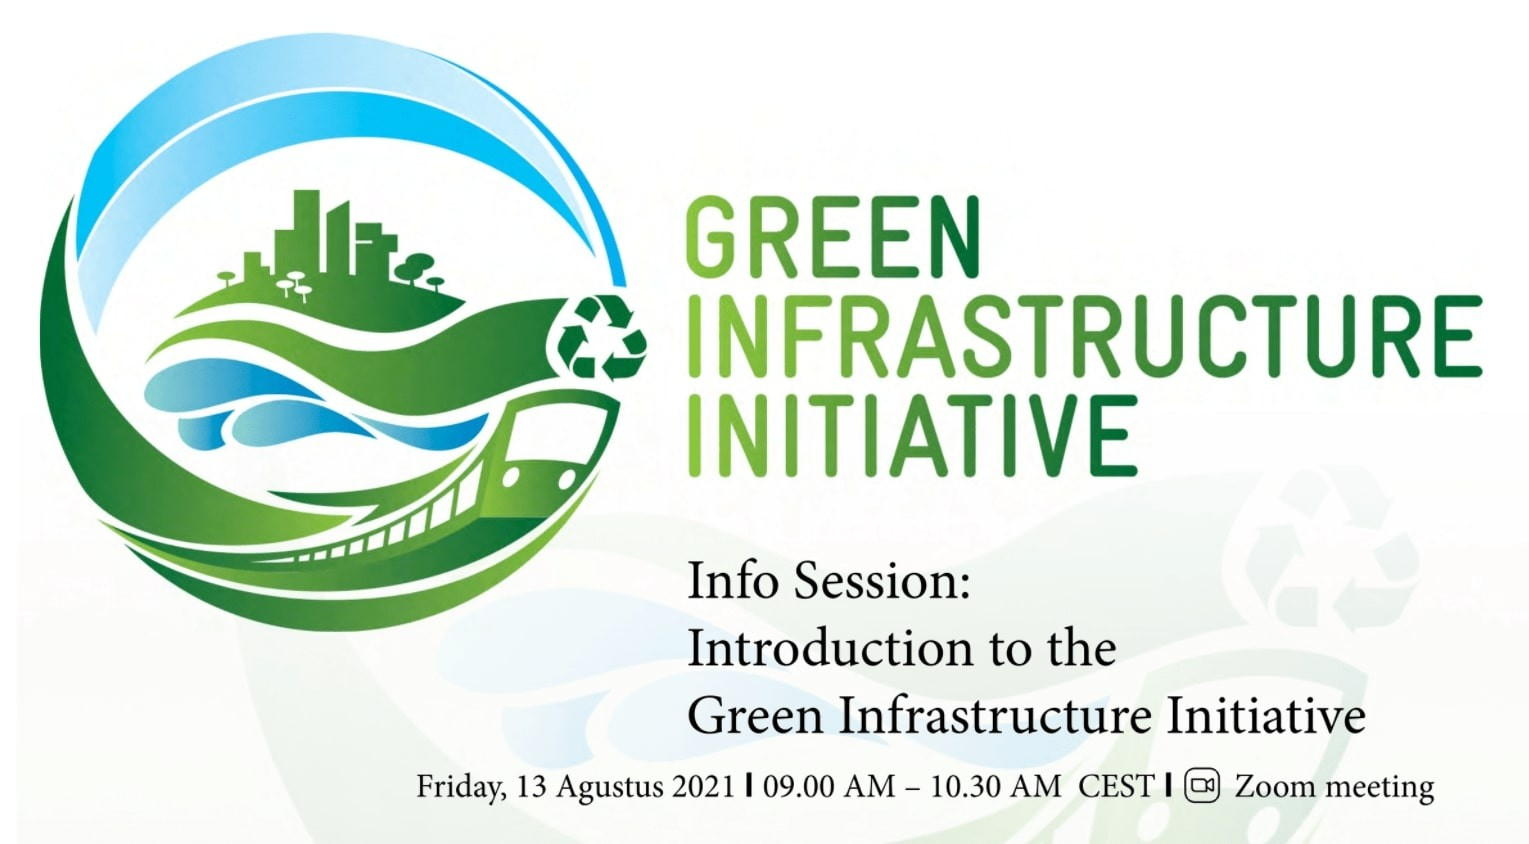 Info Session: Introduction to the Green Infrastructure Initiative